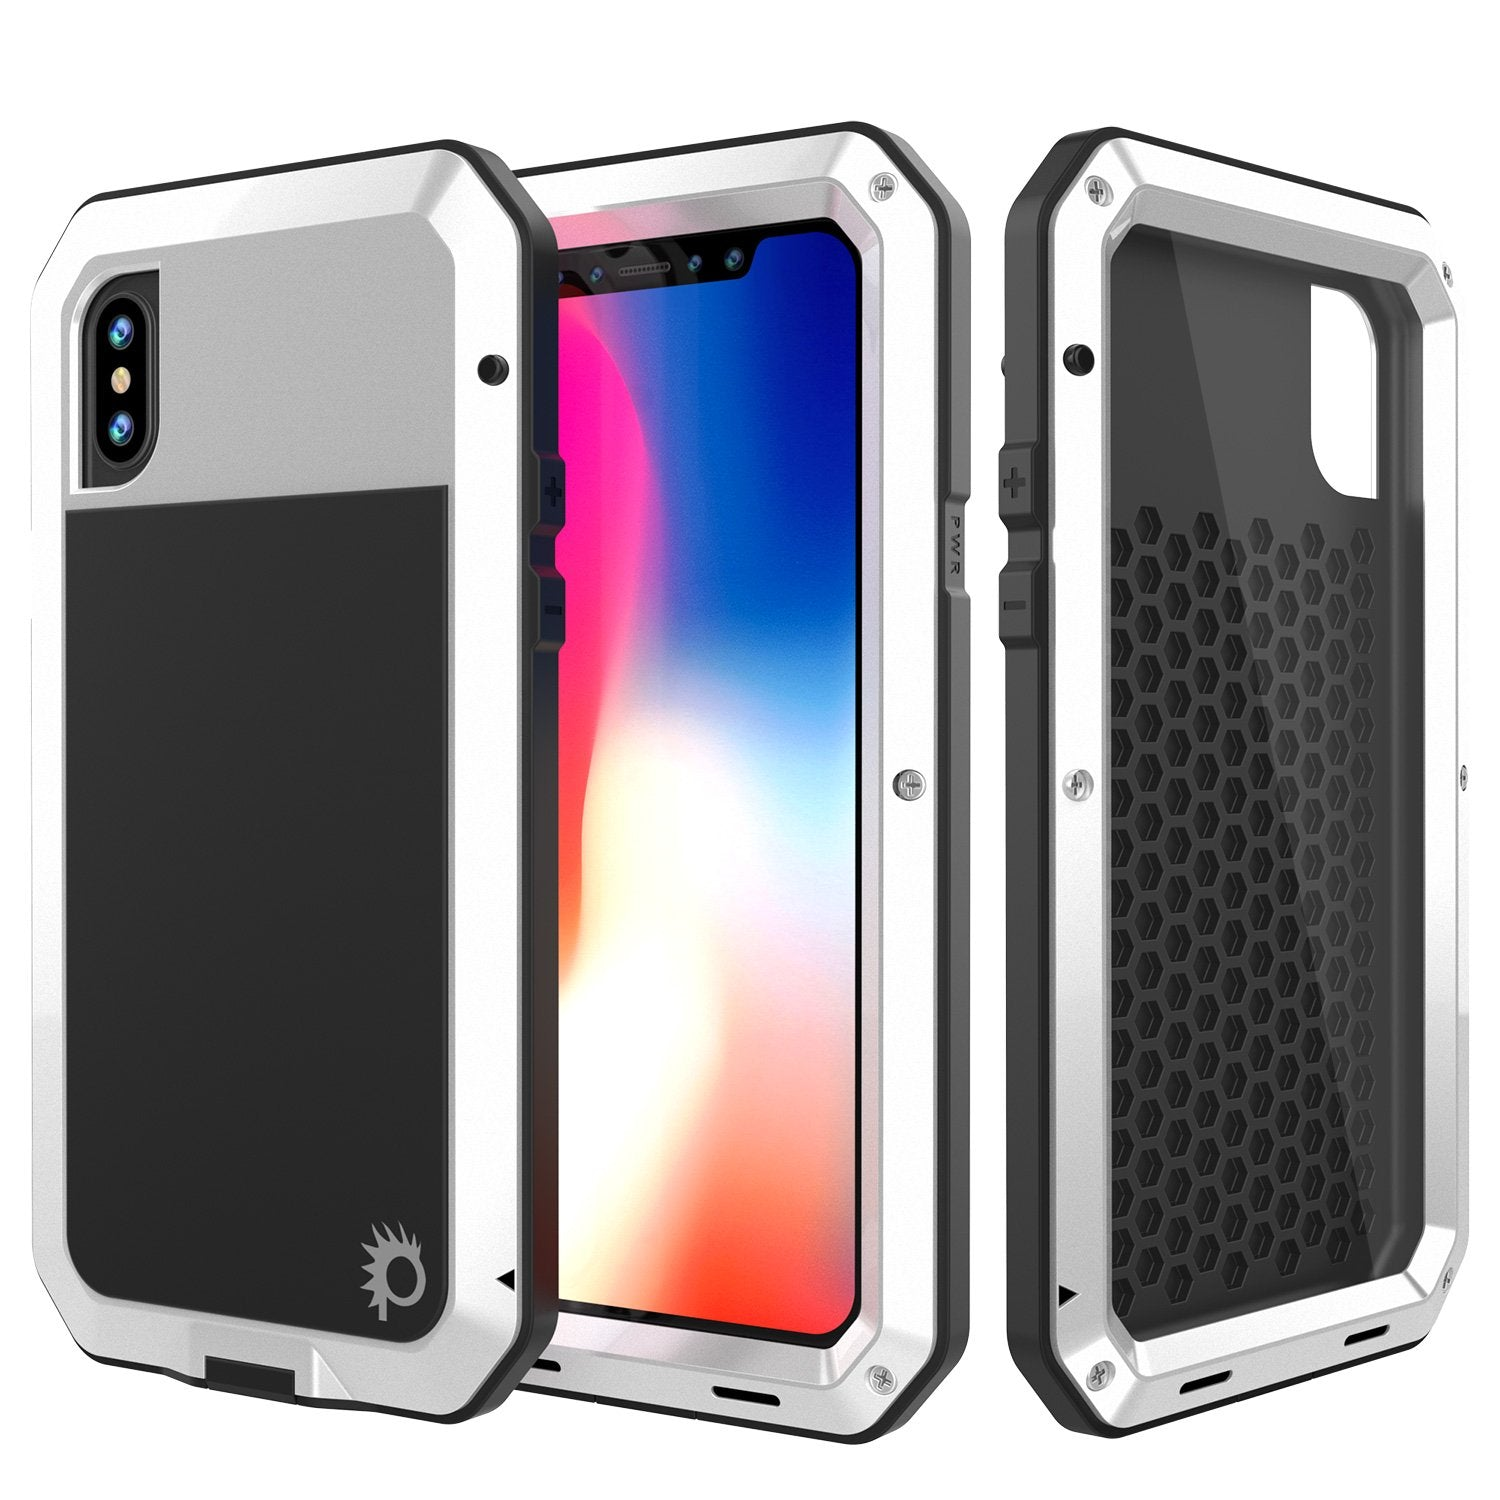 iPhone X Metal Case, Heavy Duty Military Grade Rugged Armor Cover [shock proof] Hybrid Full Body Hard Aluminum & TPU Design [non slip] W/ Prime Drop Protection for Apple iPhone 10 [White]